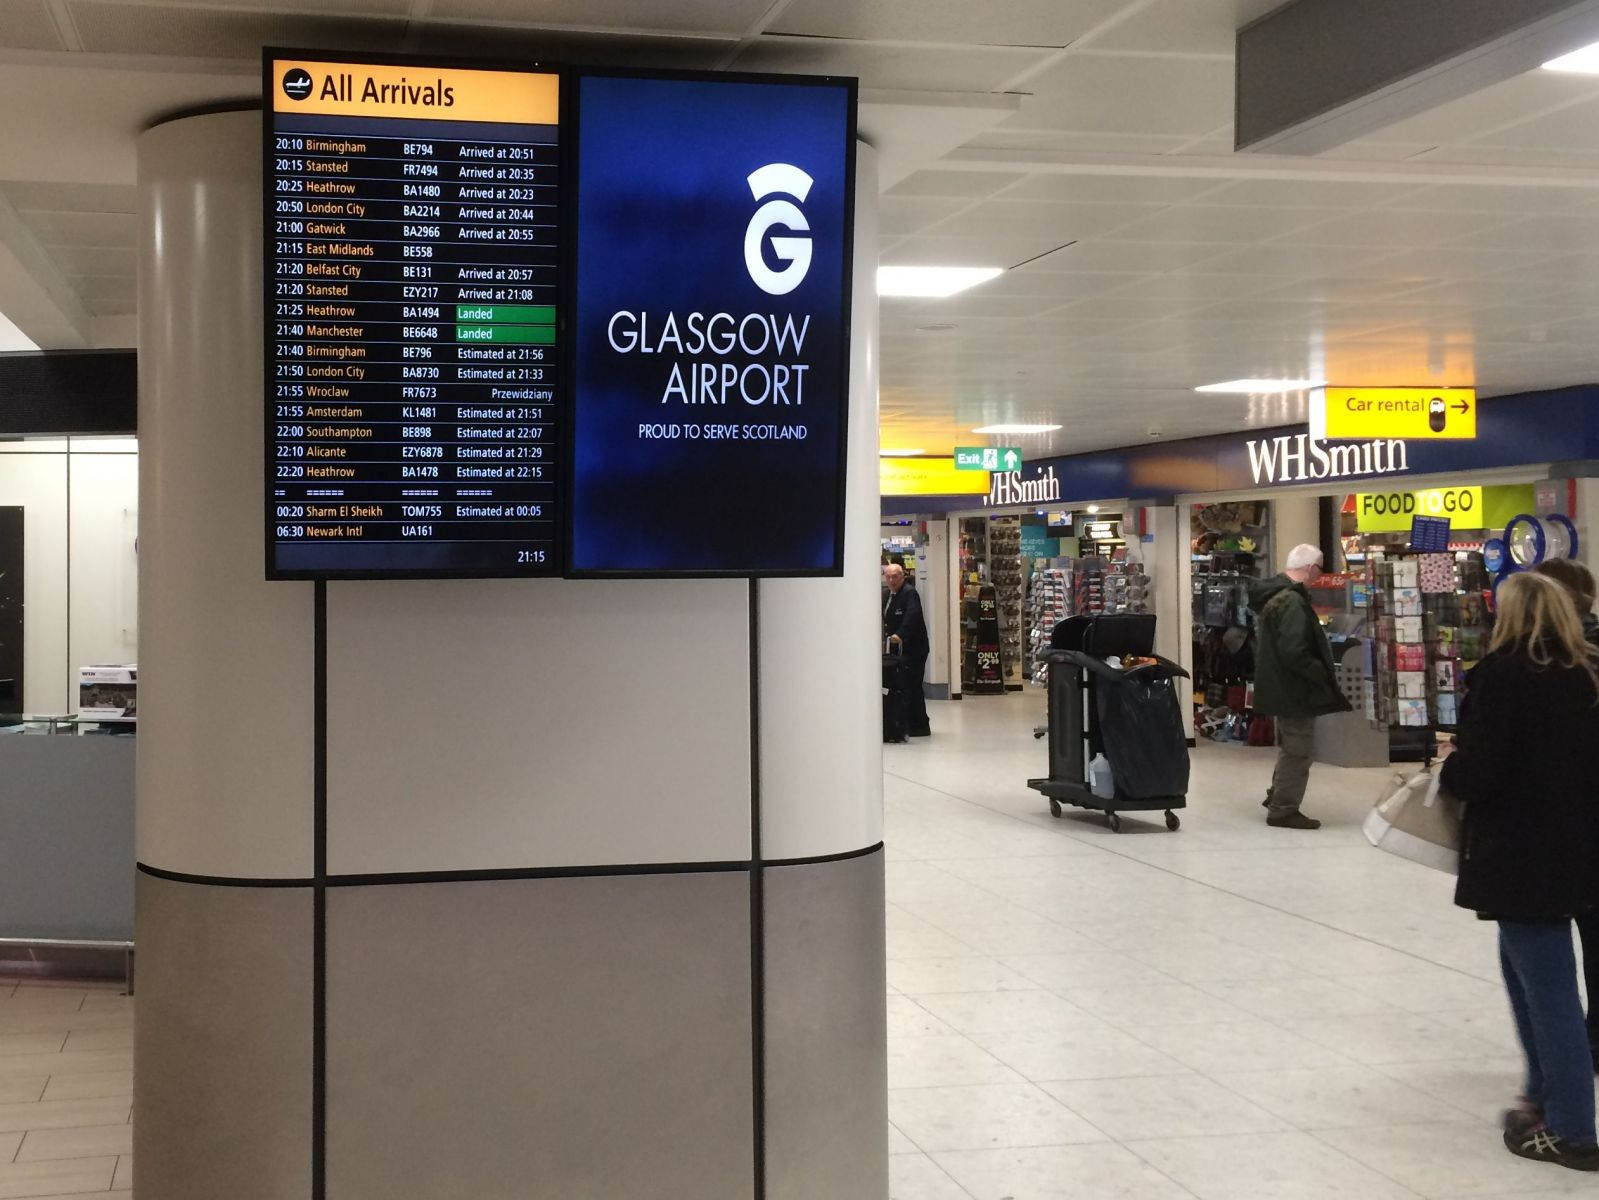 Easy car rental at Glasgow Airport